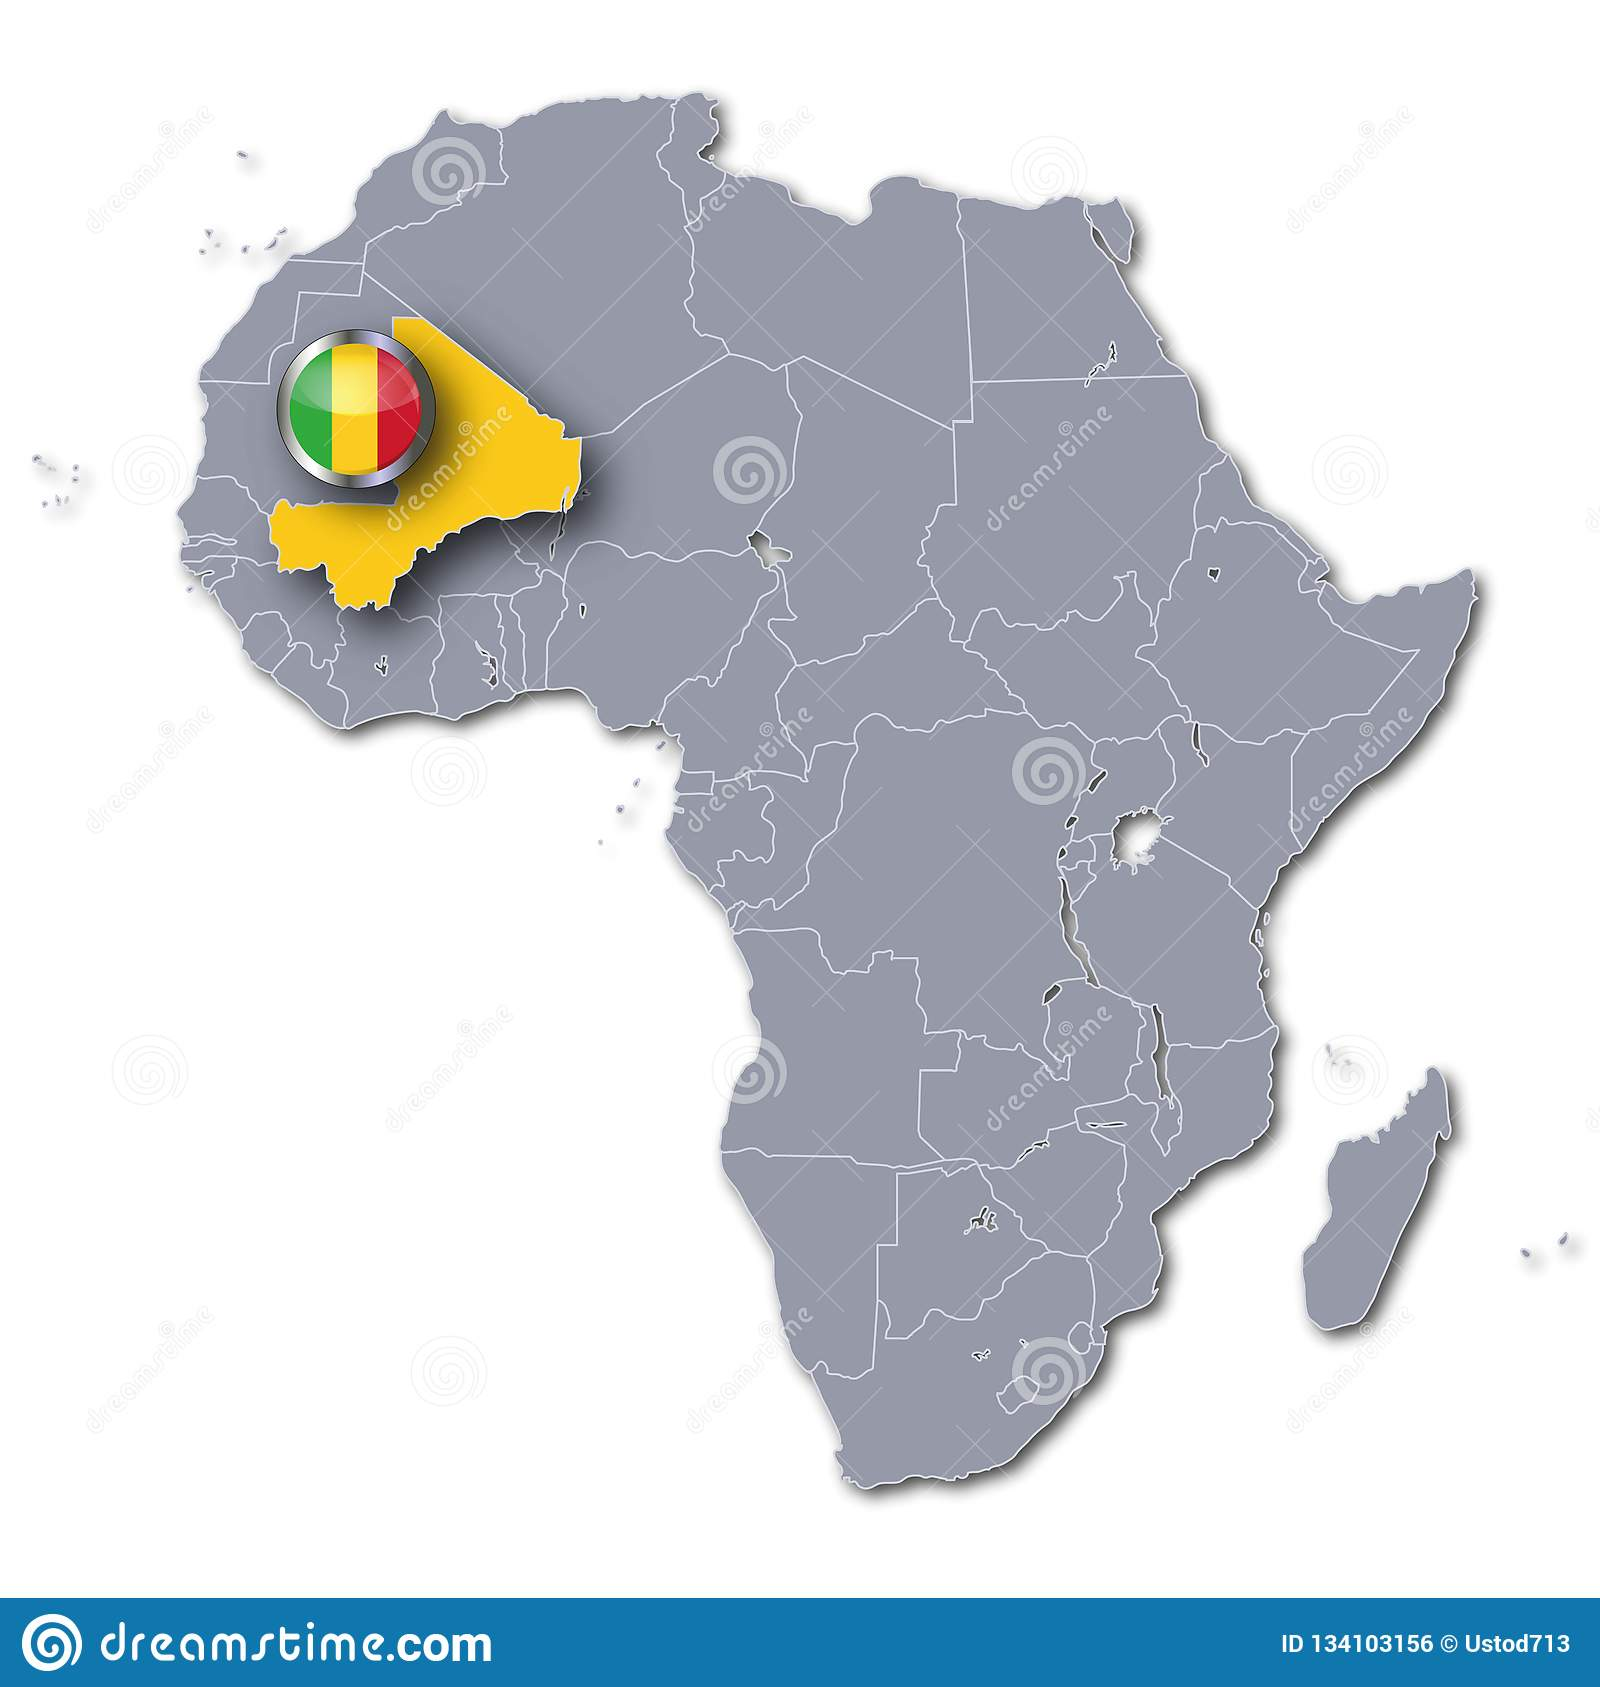 Africa Map Mali.Africa Map With Mali Stock Illustration Illustration Of